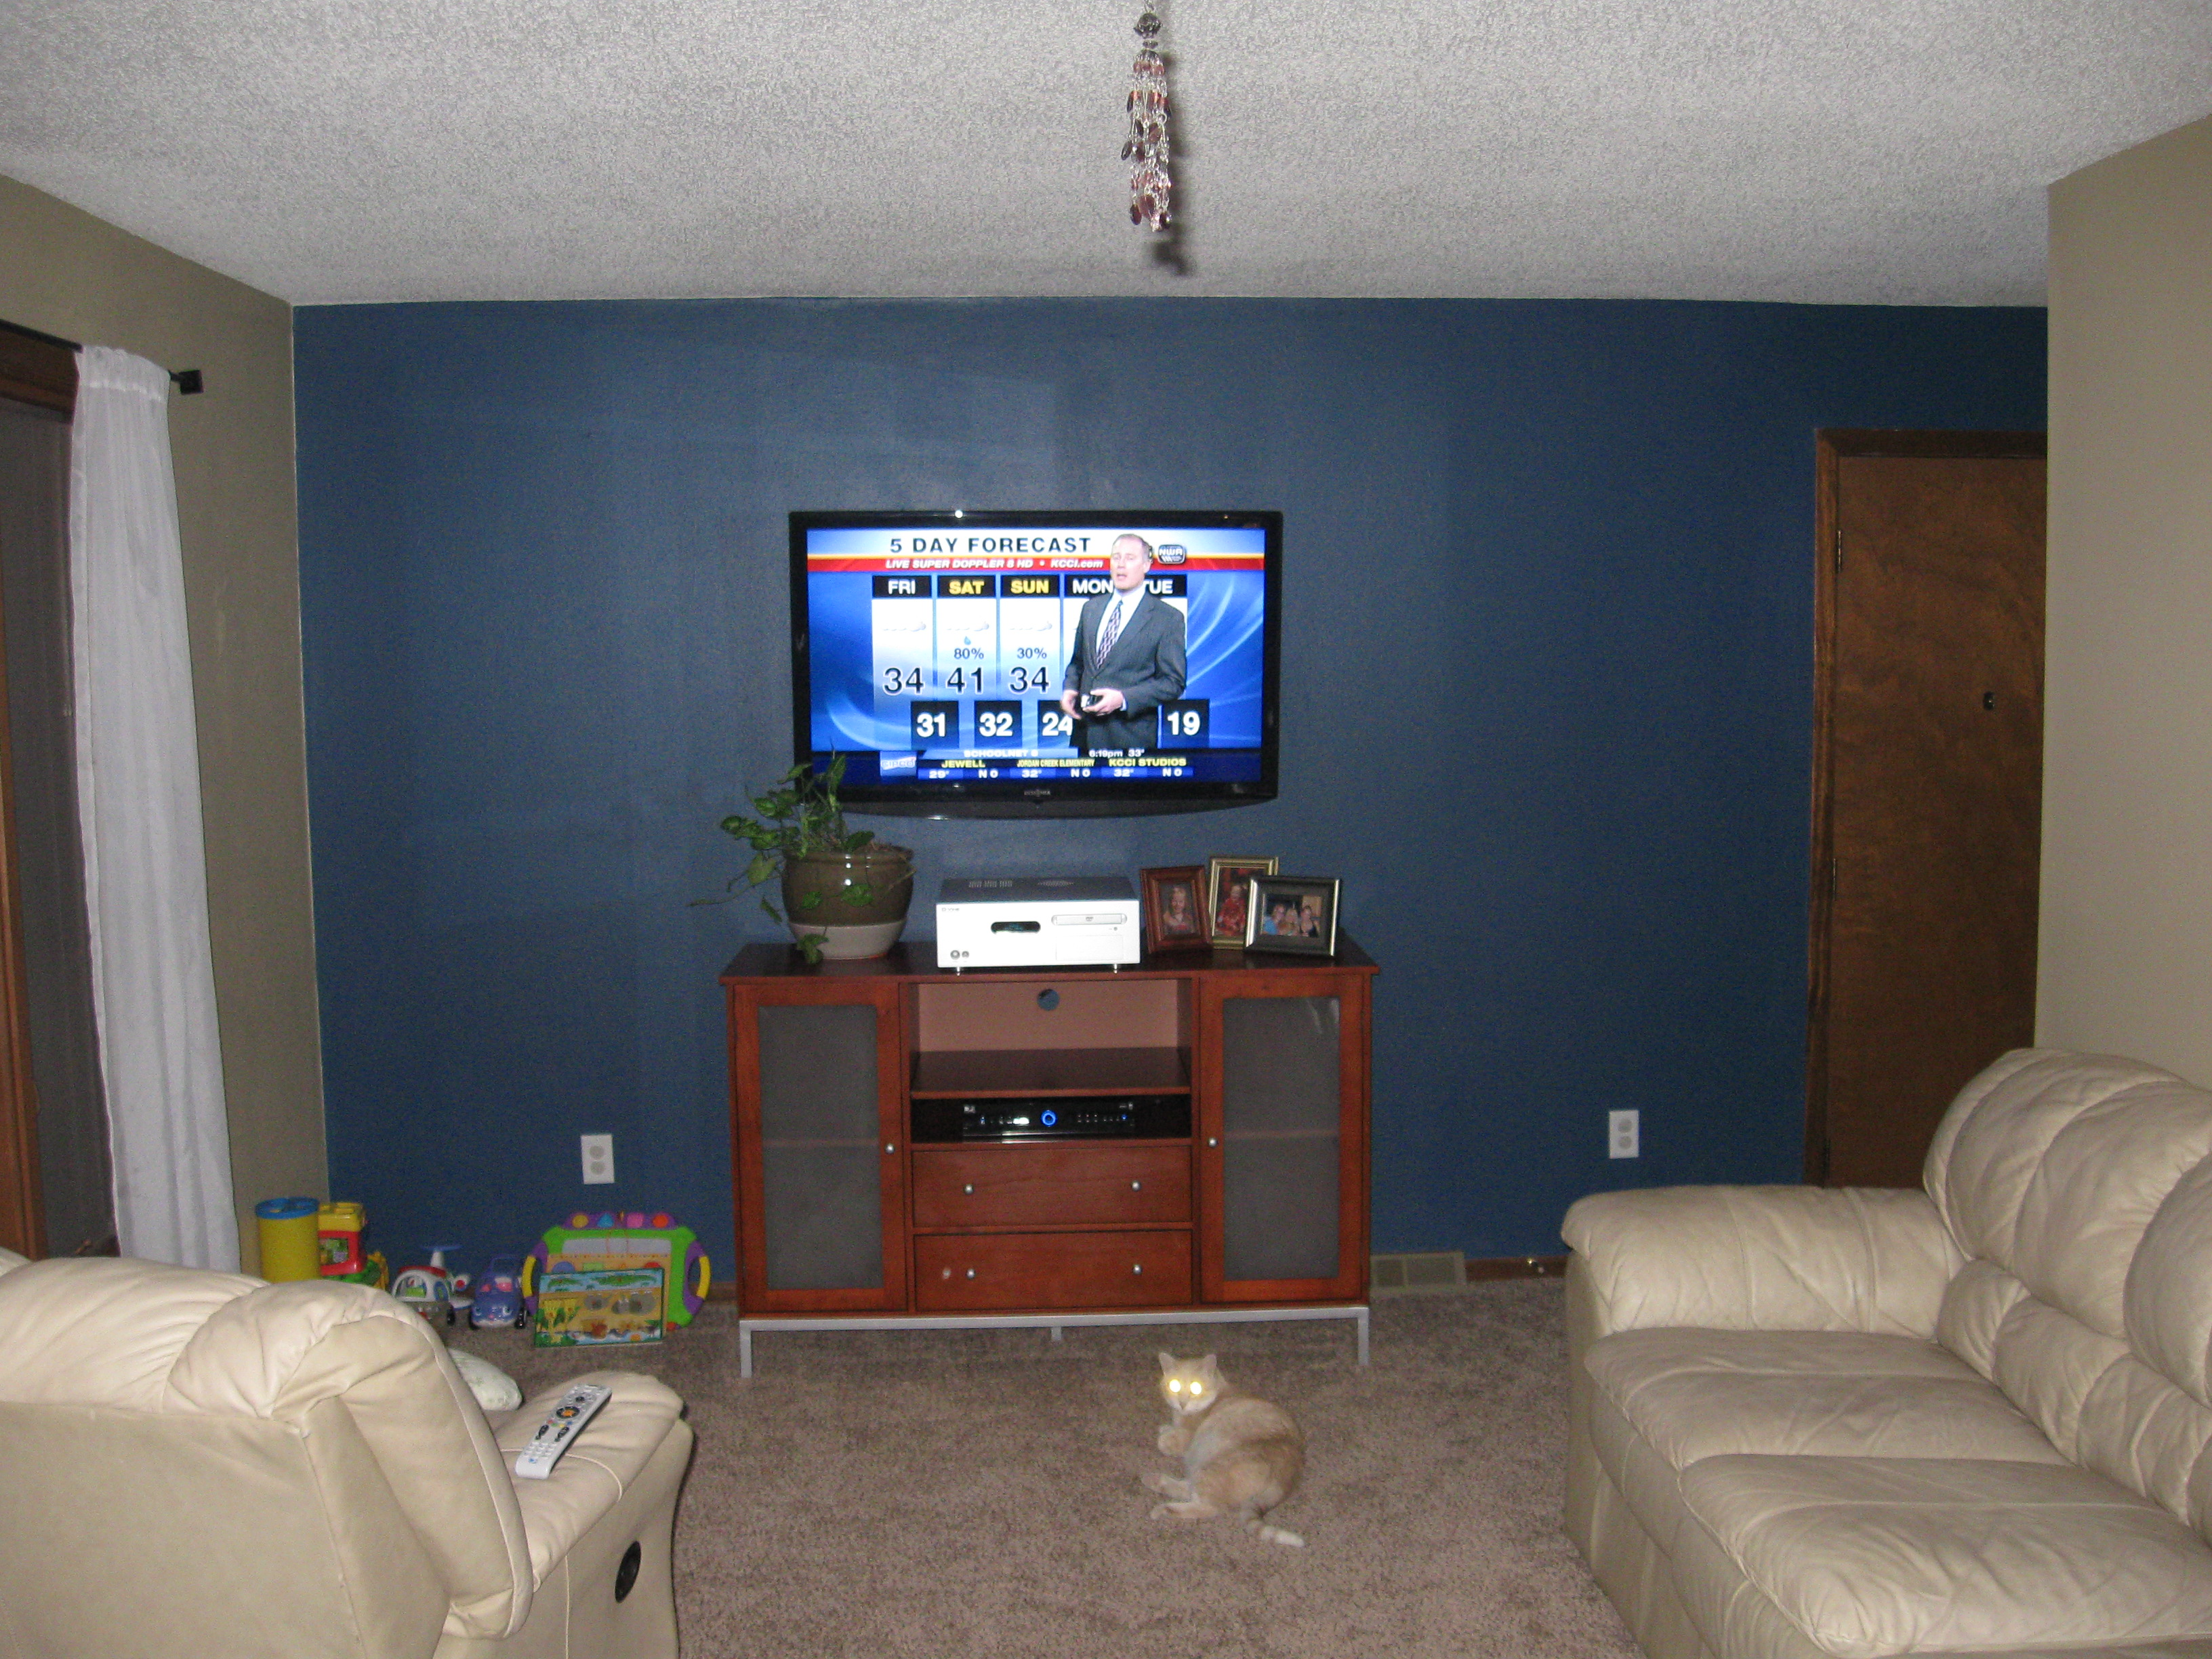 How To Run Hdmi Cable Through Existing Construction Drywall Ethernet Walls Flat Screen Wall Mounted Furniture